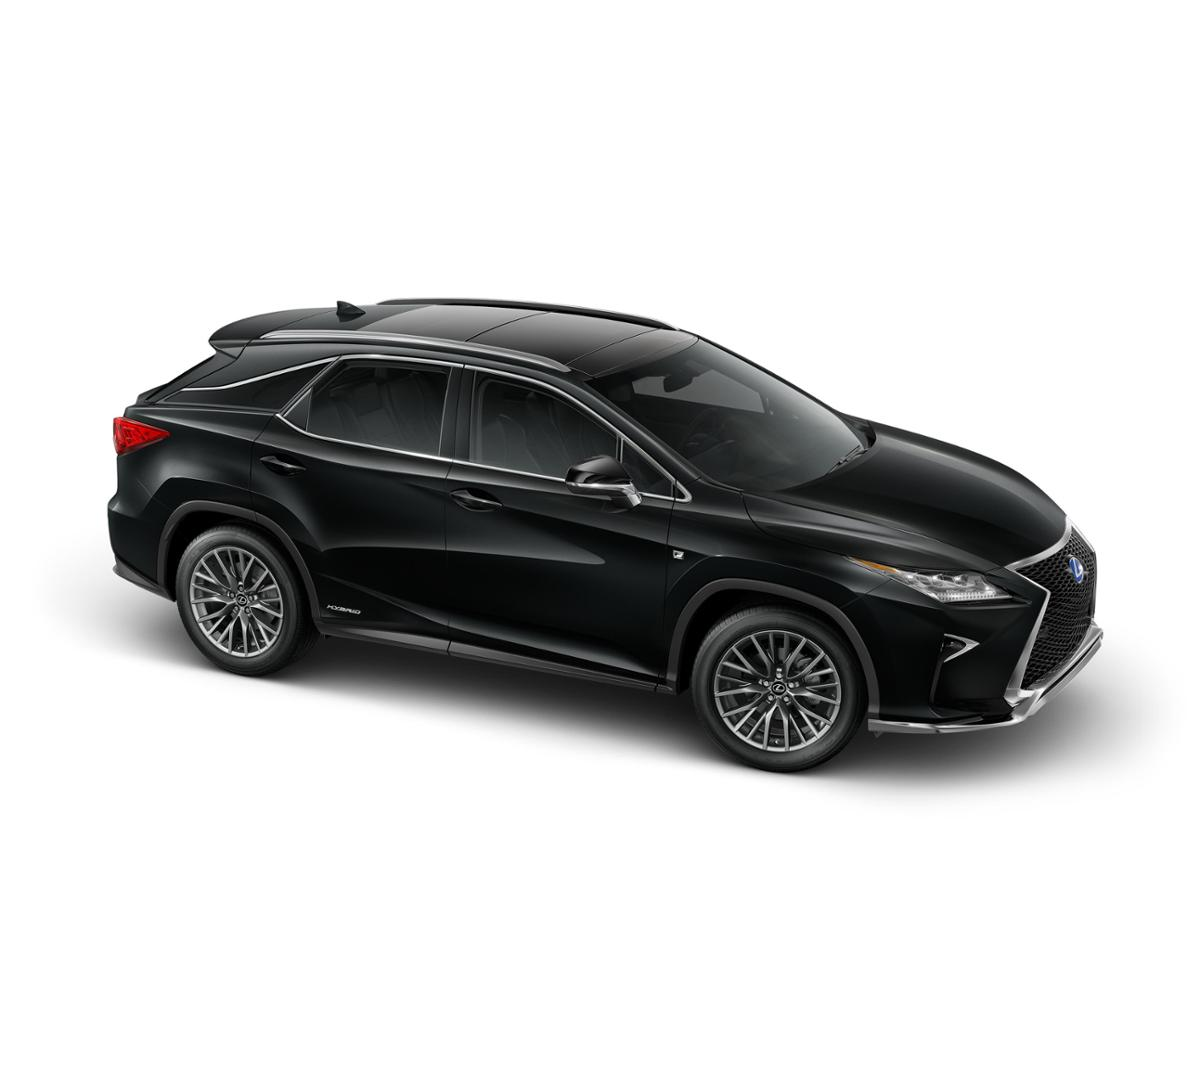 Lexus Of Pembroke Pines Lexus Dealership With New And Used